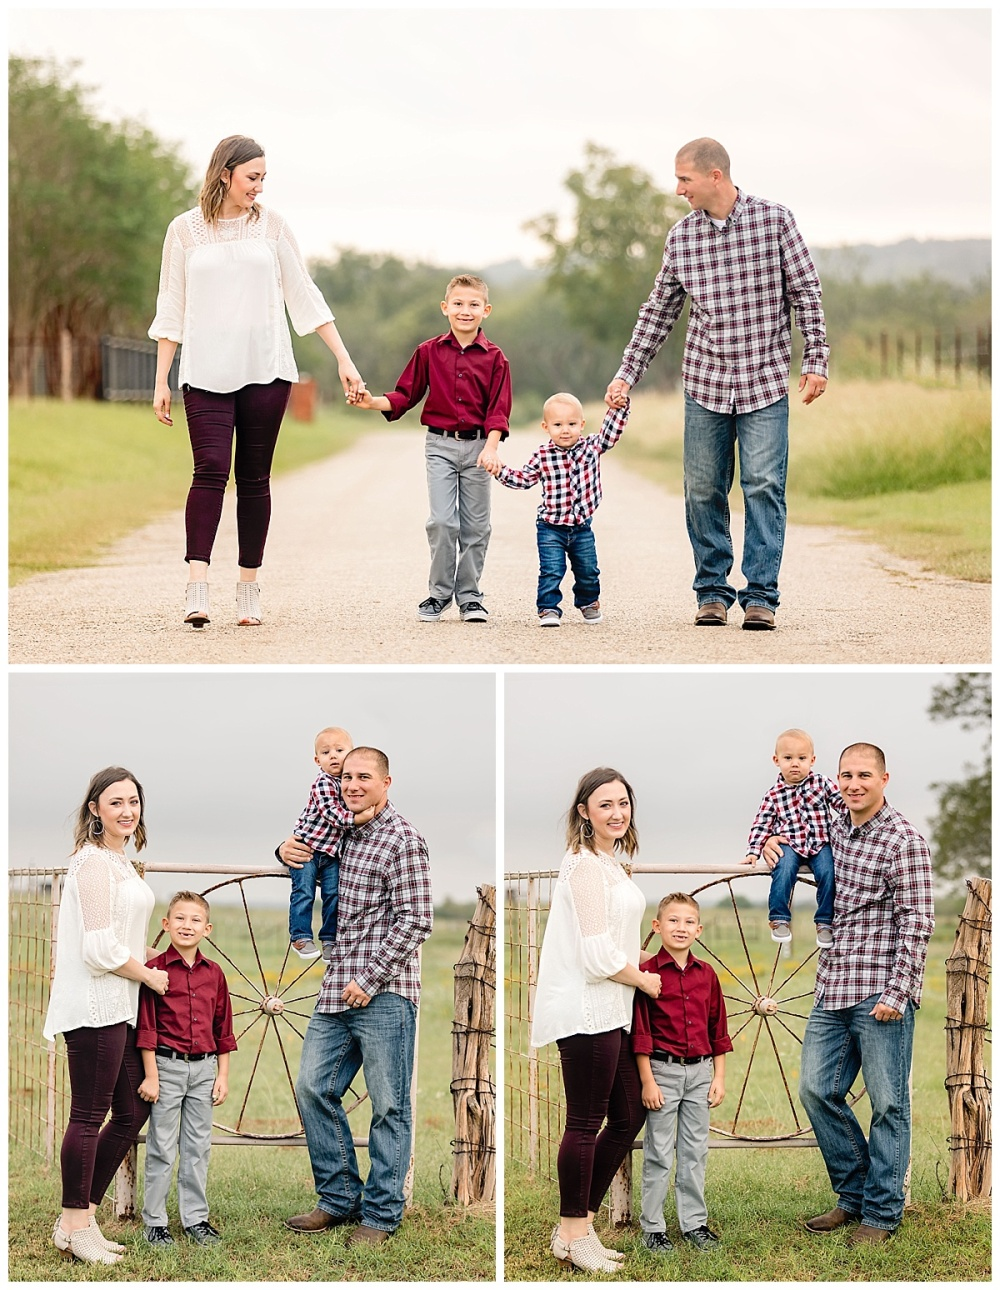 Family-Photographer-LaVernia-Texas-Fall-Carly-Barton-Photography_0001.jpg